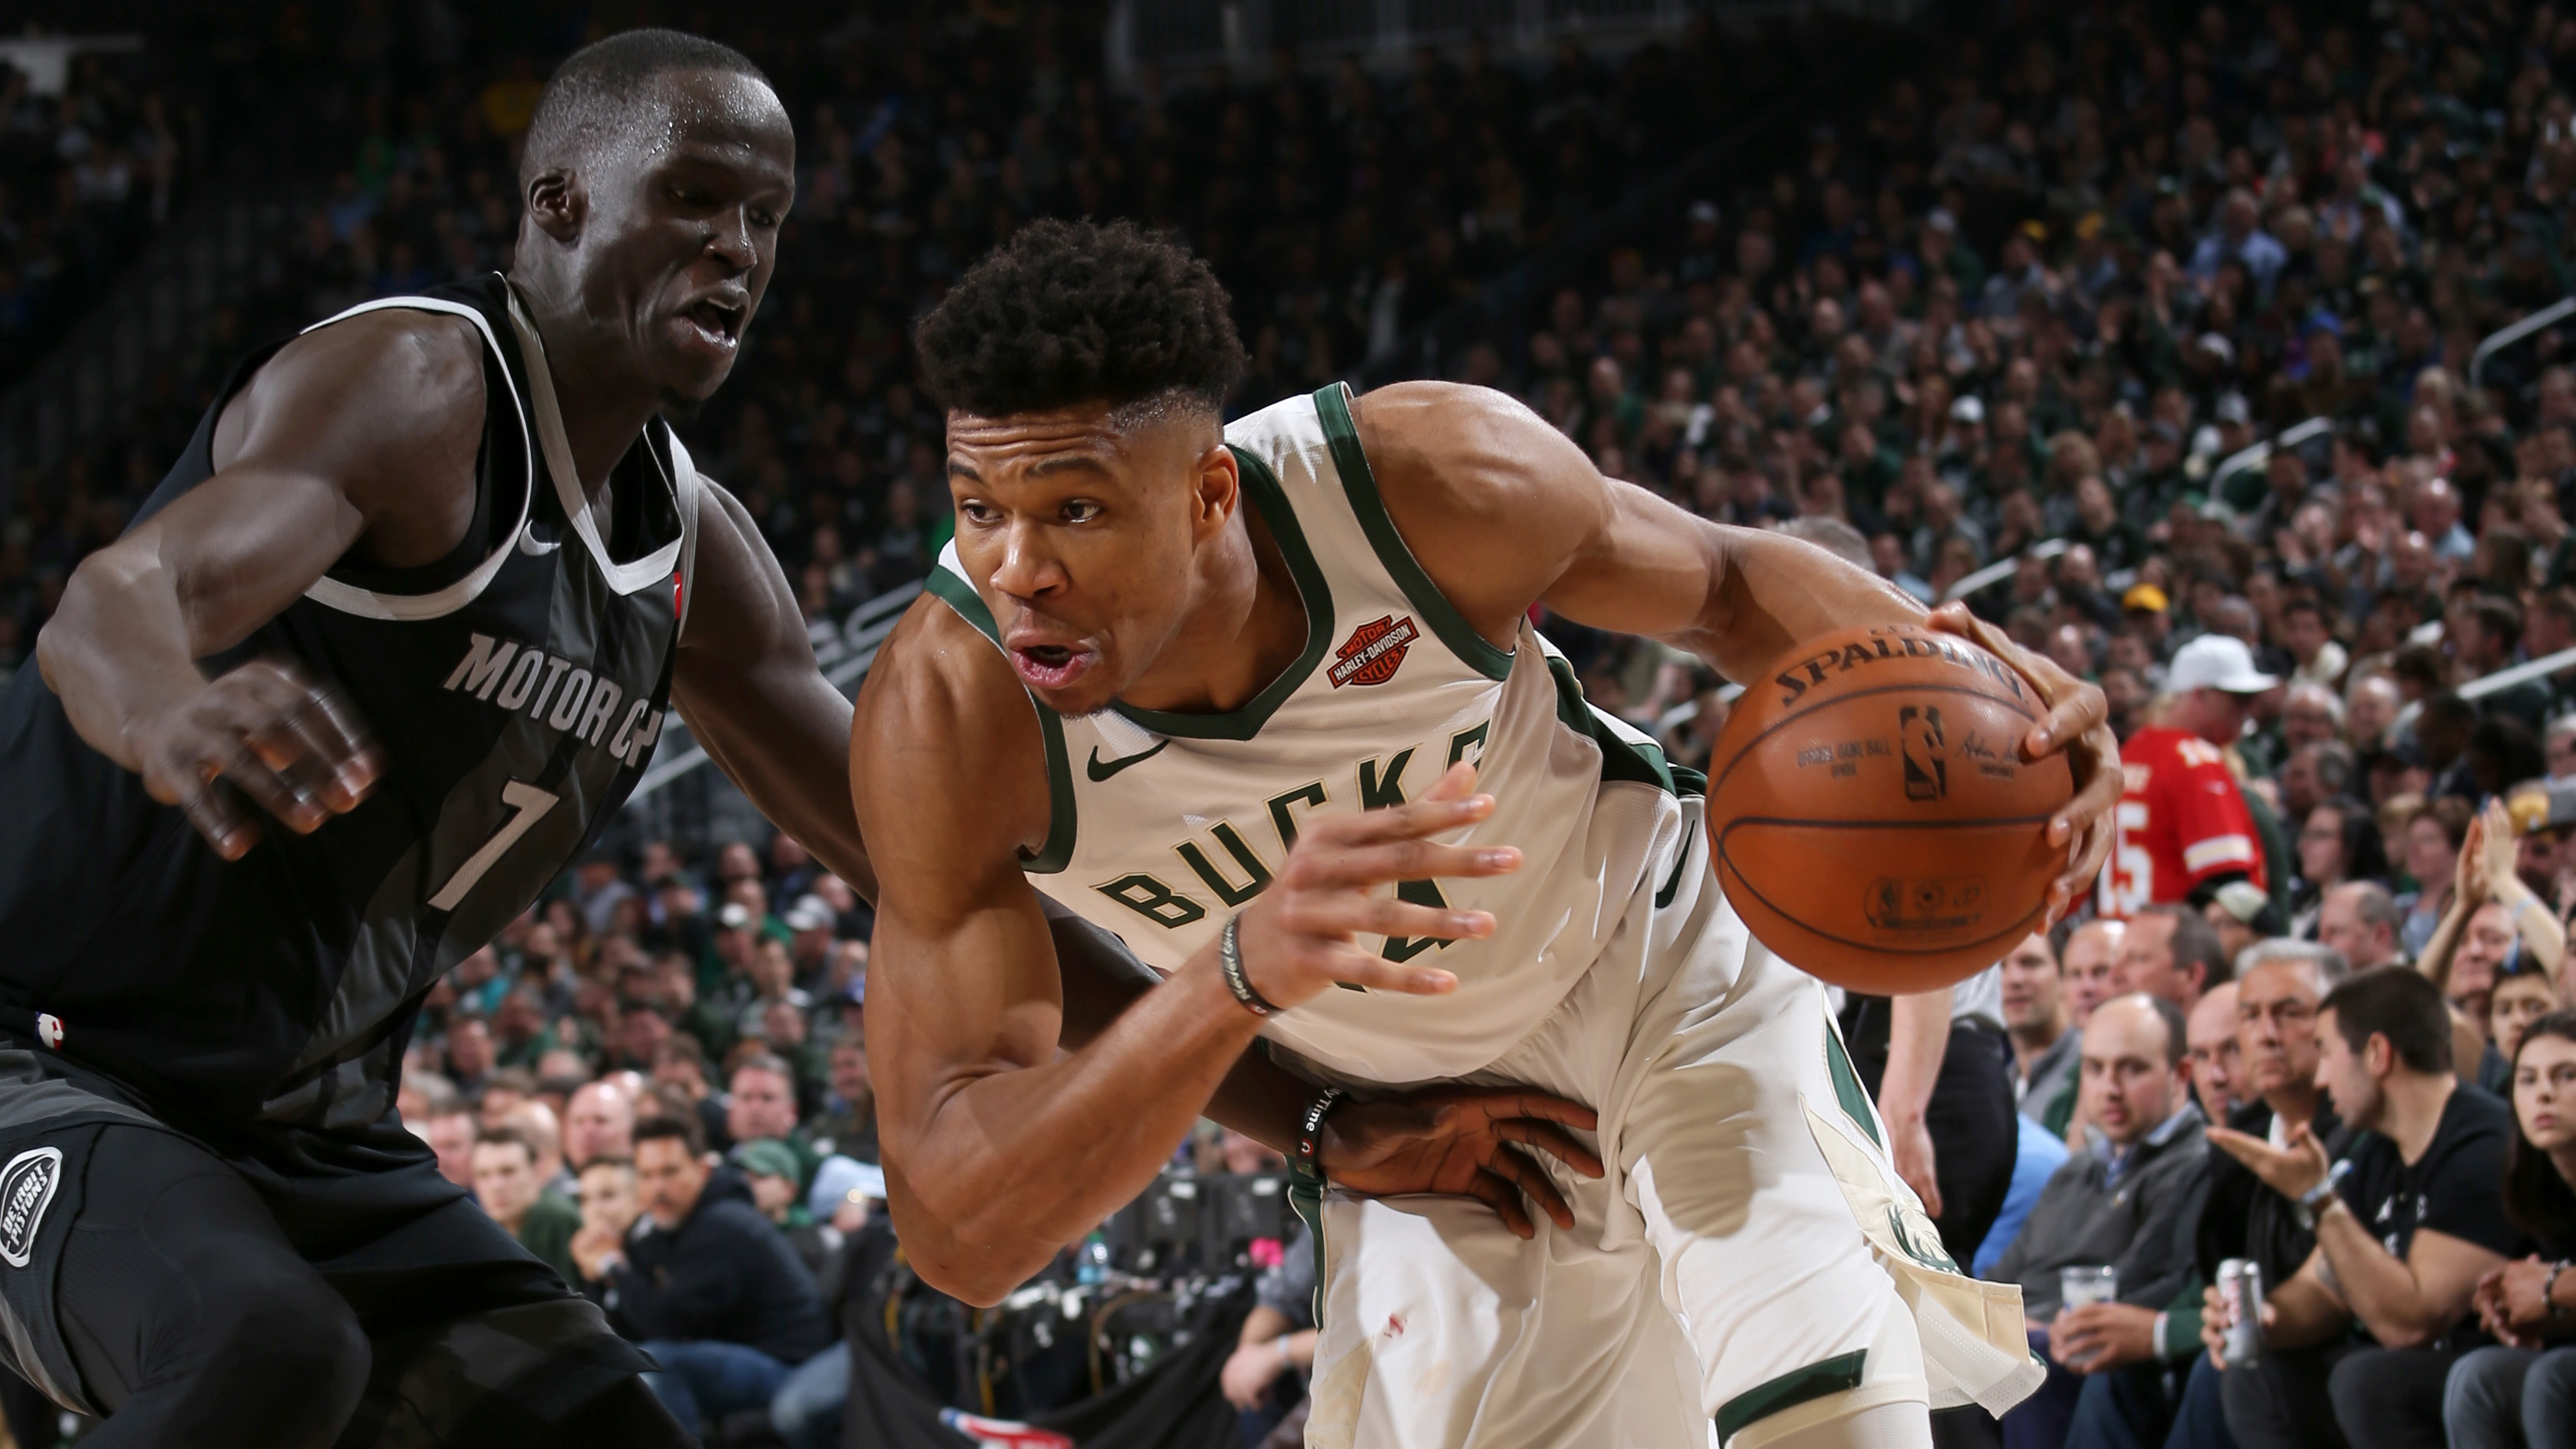 GAME TWO RECAP: Bucks 120 - Pistons 99 | 4.17.19